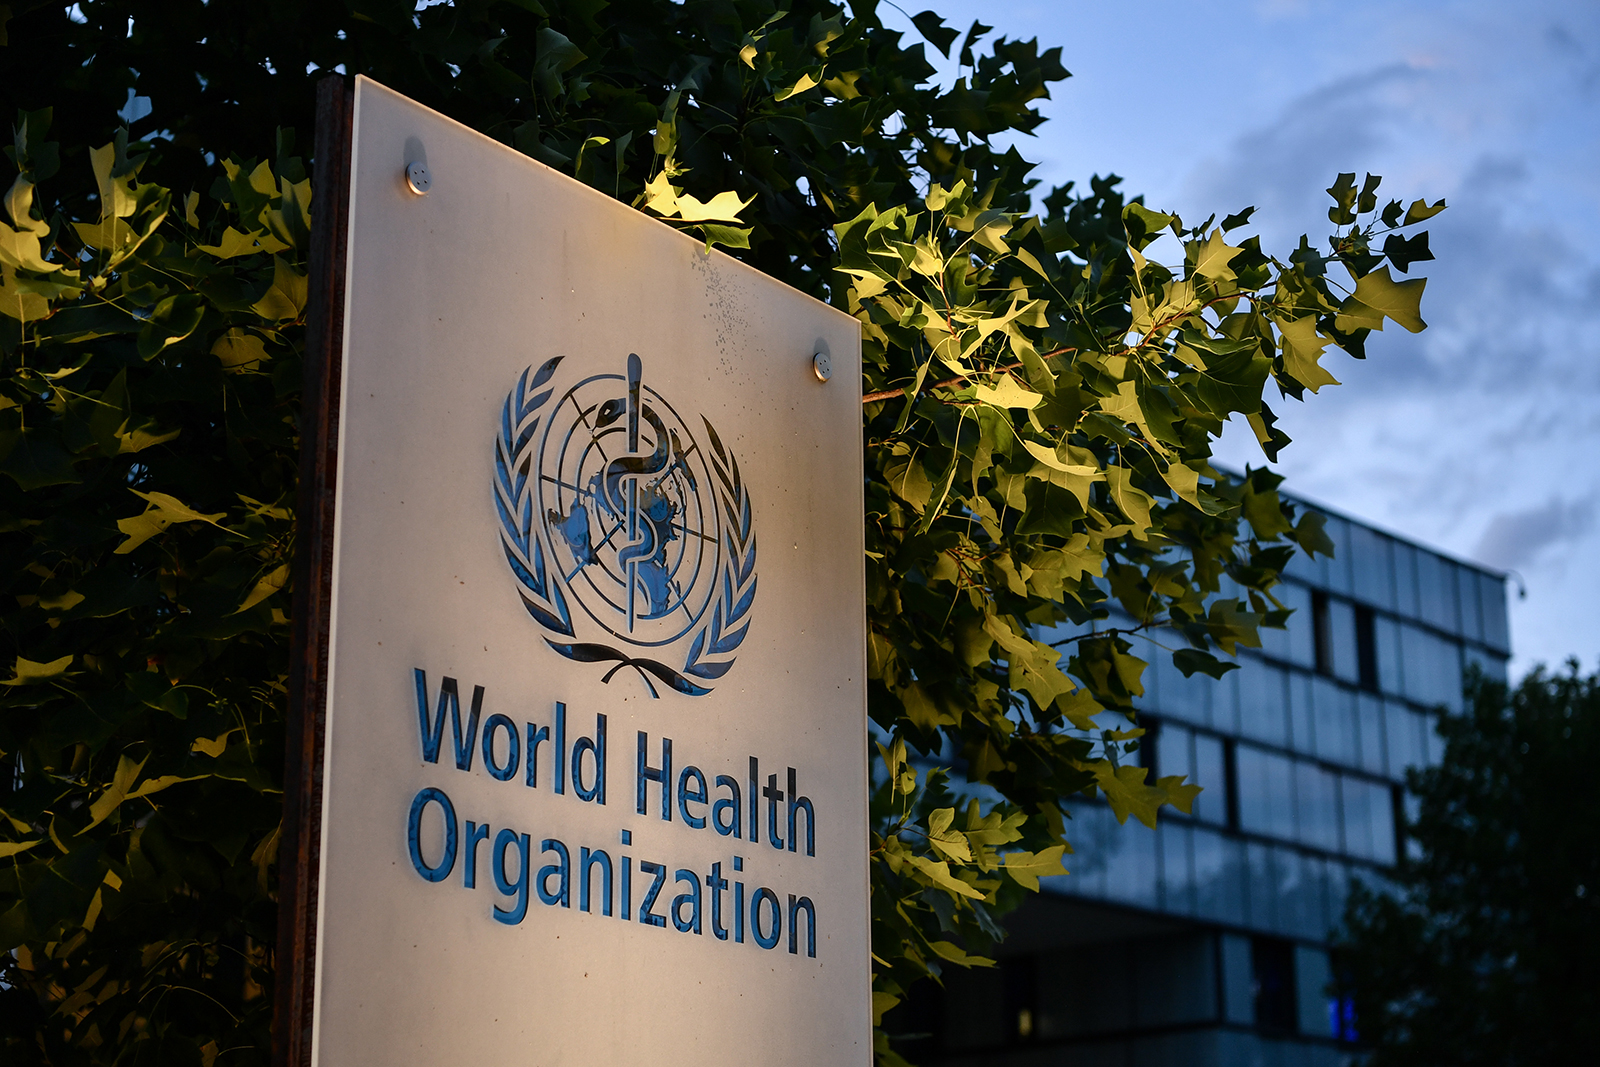 The World Health Organization (WHO) is seen at their headquarters in Geneva, Switzerland, on August 17.